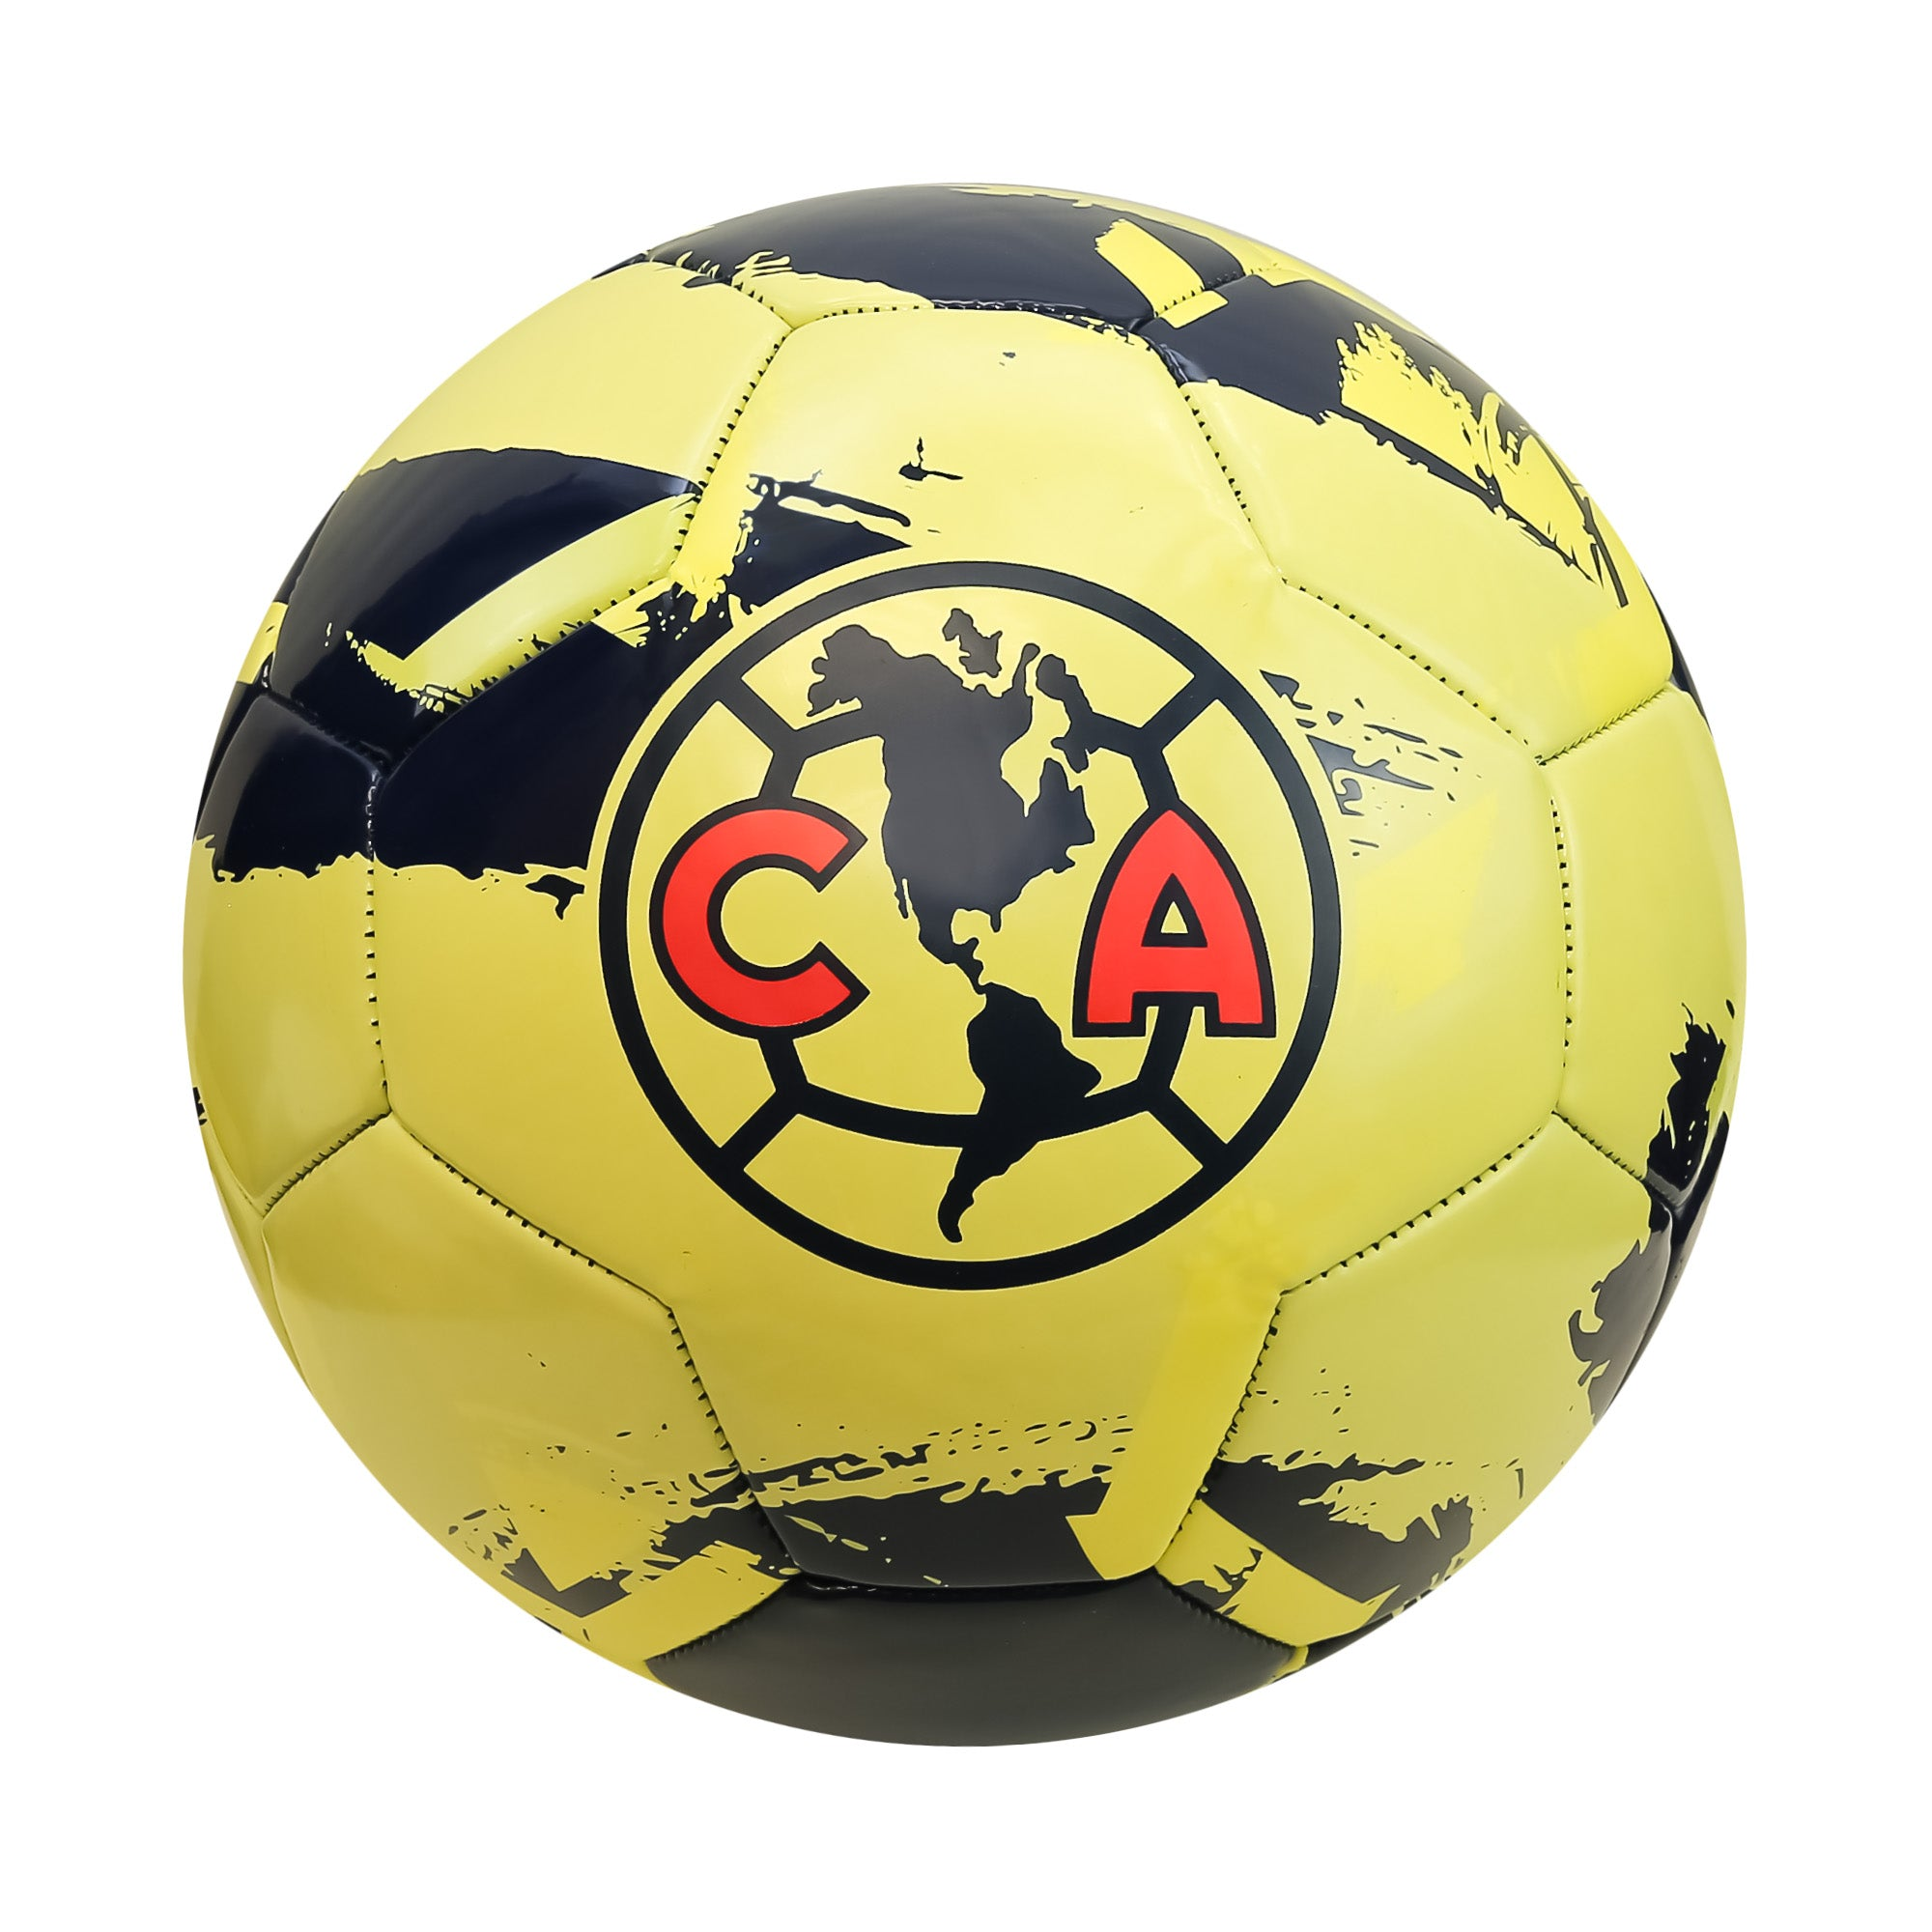 Club América Brush Regulation Size 5 Soccer Ball by Icon Sports